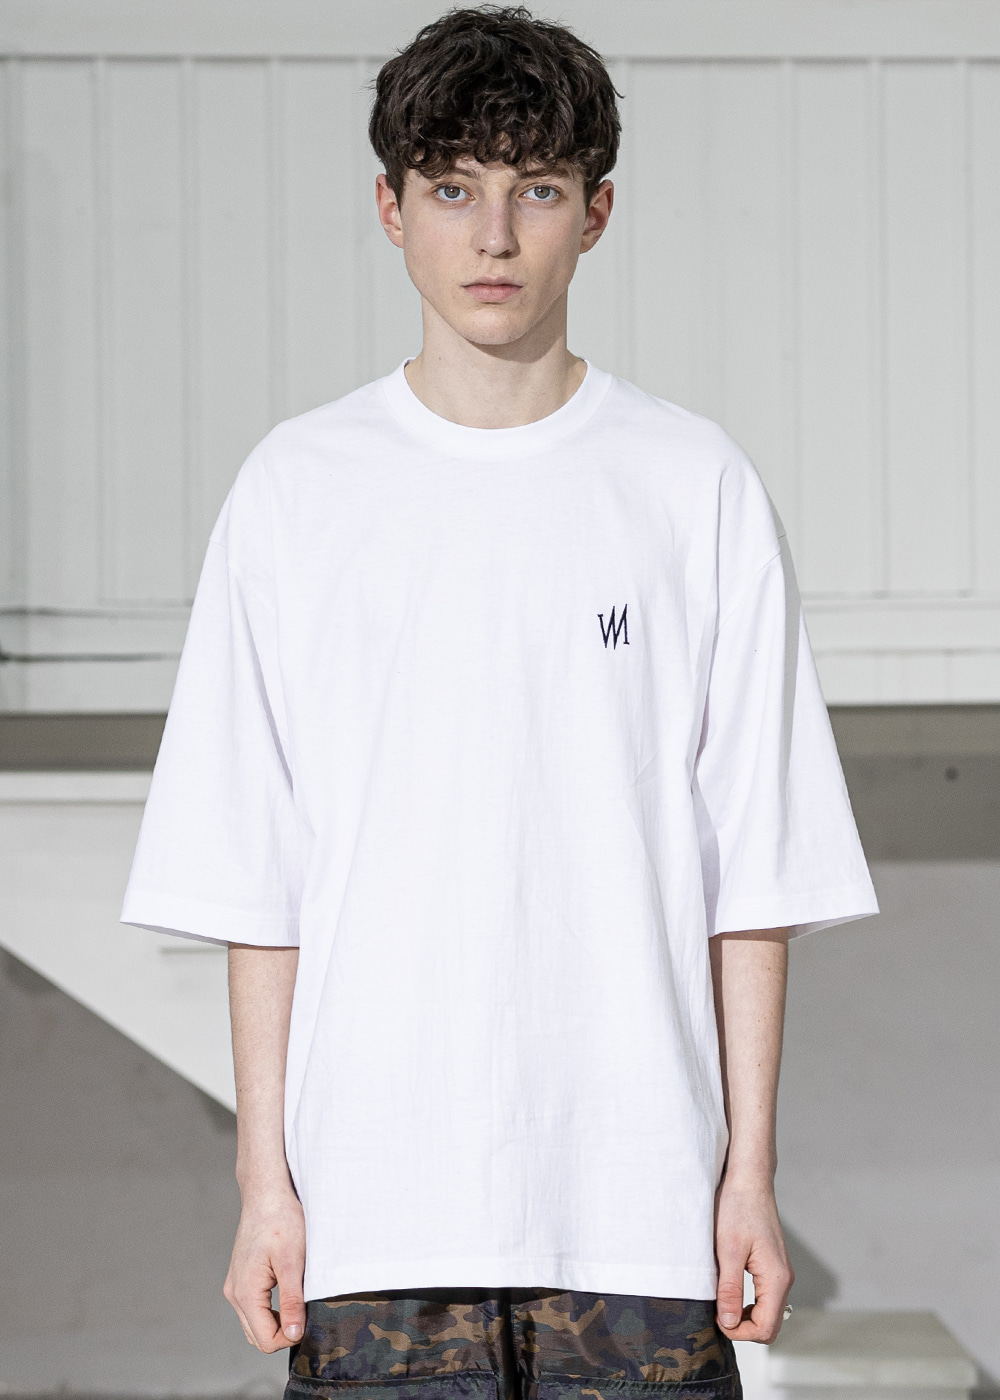 SIGNATURE OVERSIZED T-SHIRTS MSZTS004-WT